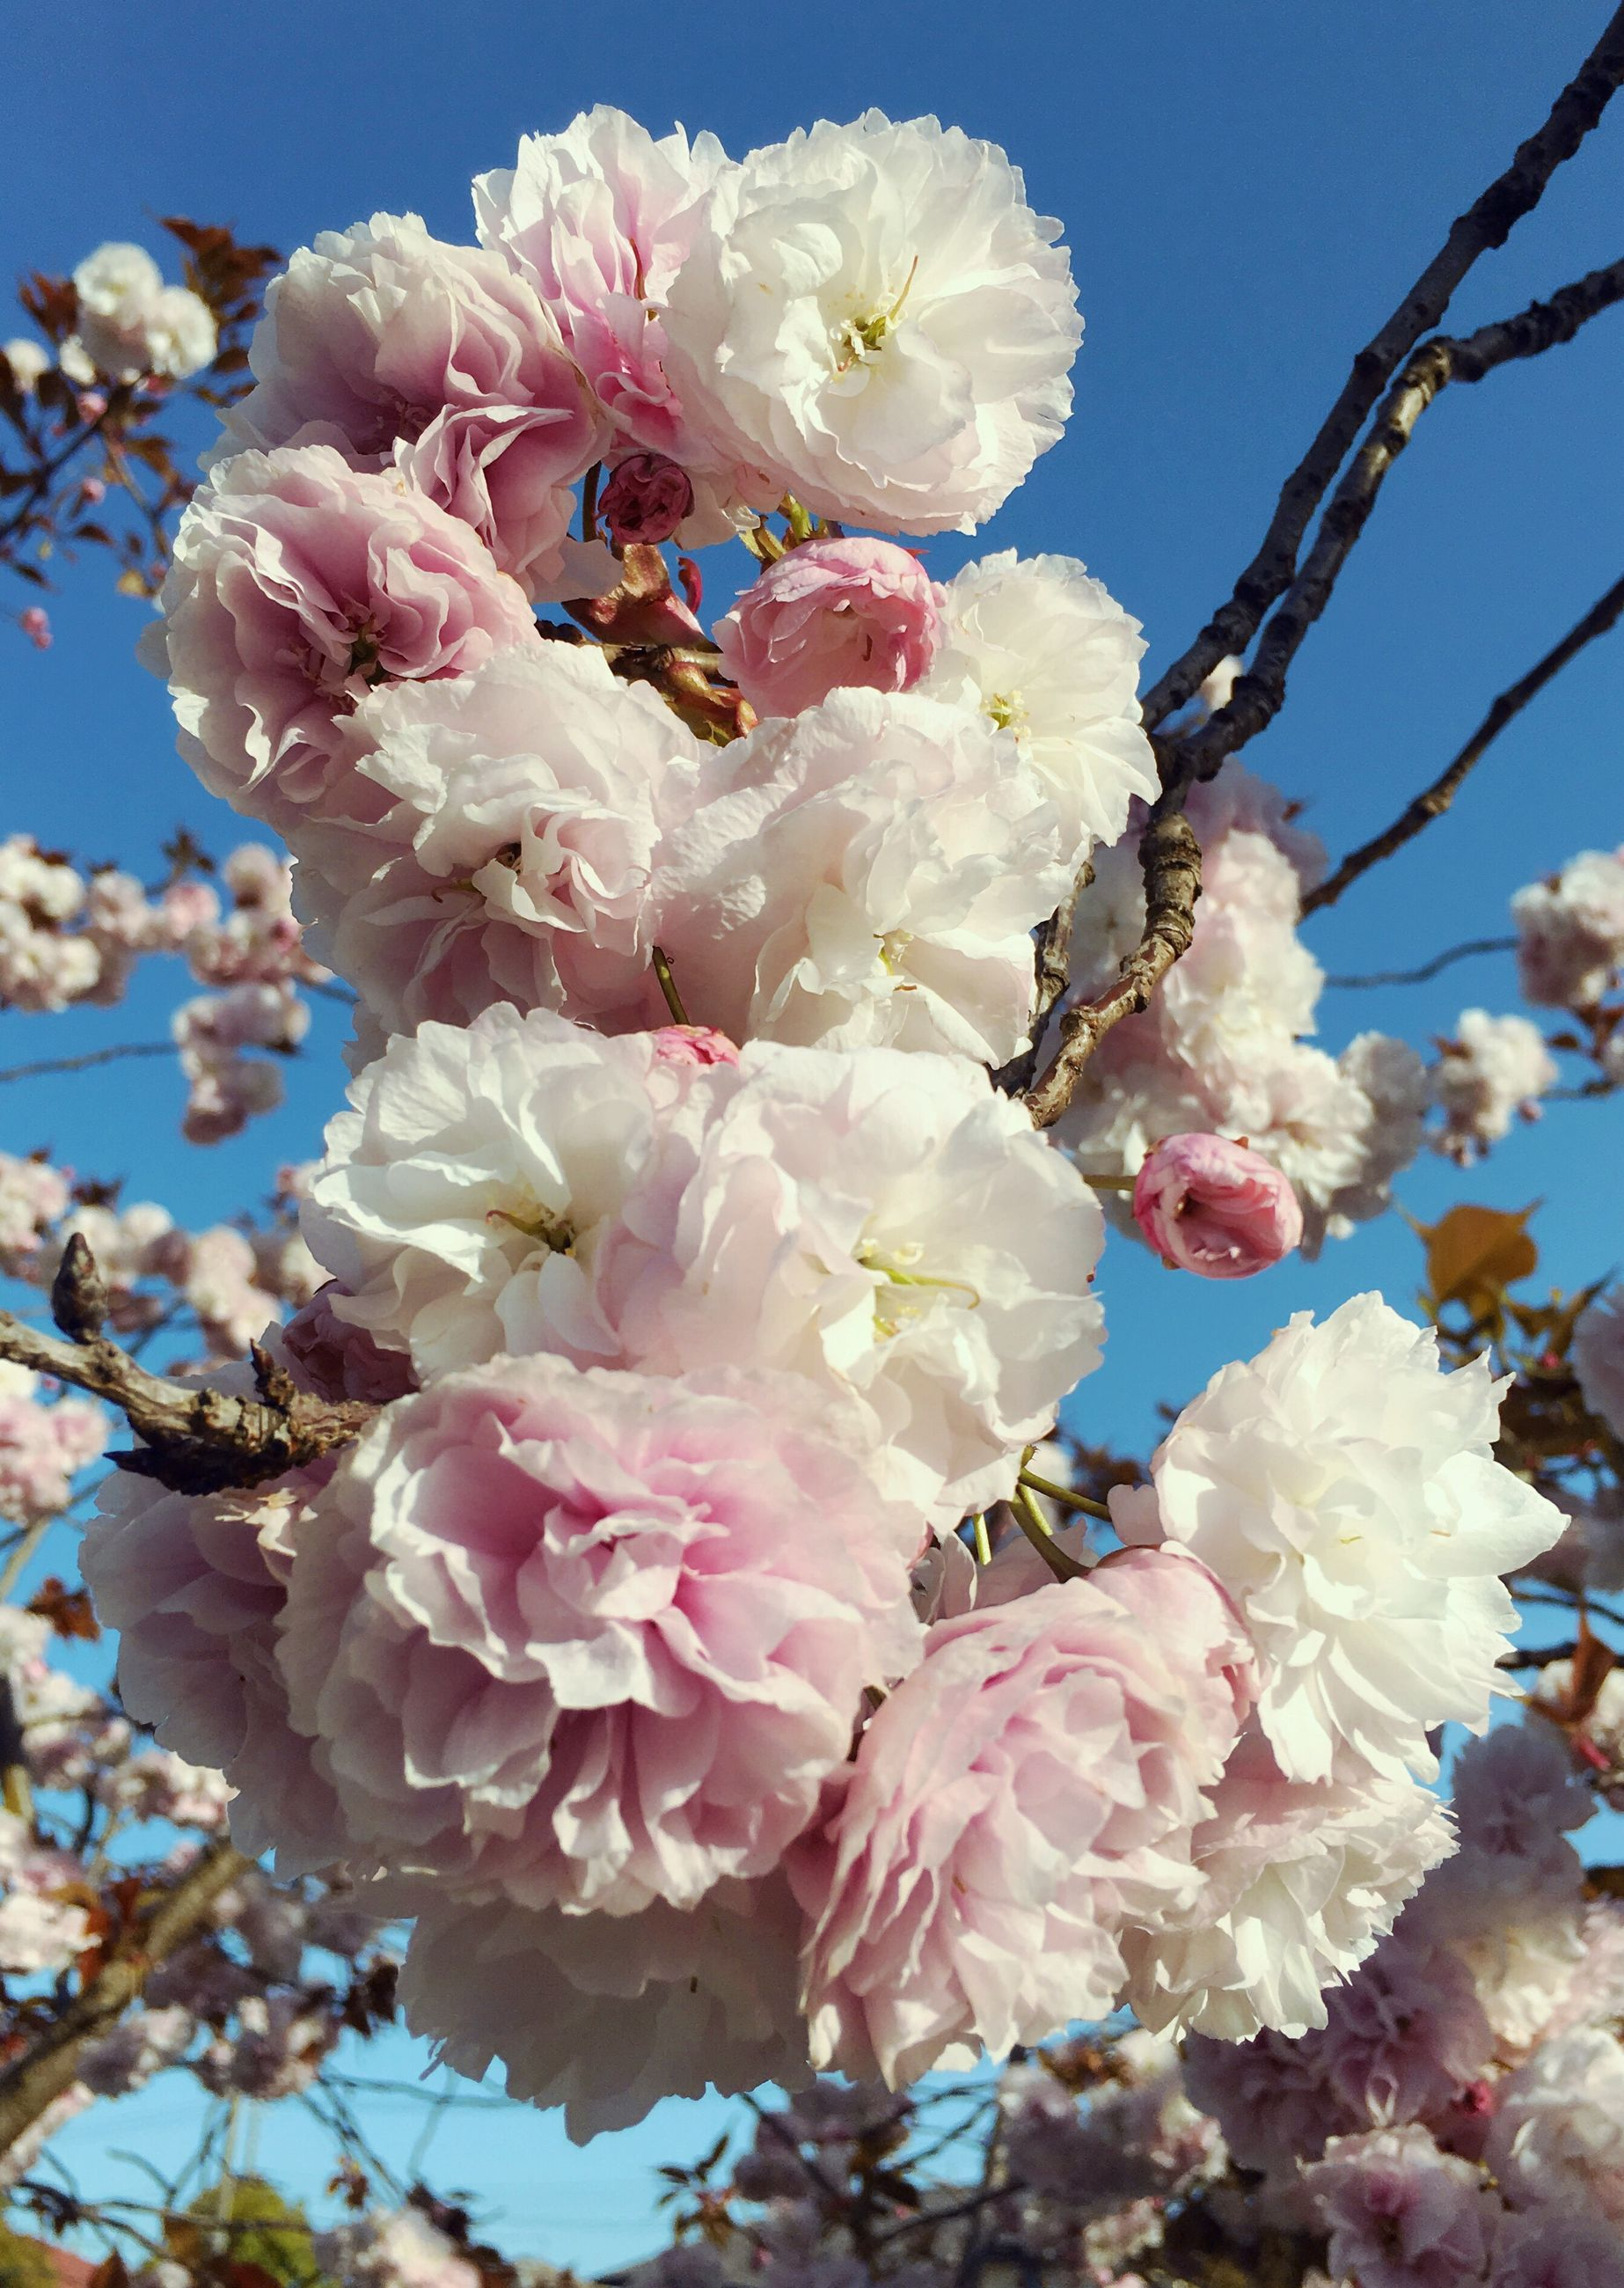 flower, freshness, fragility, branch, cherry blossom, tree, petal, cherry tree, growth, beauty in nature, blossom, nature, low angle view, pink color, blooming, springtime, close-up, fruit tree, flower head, white color